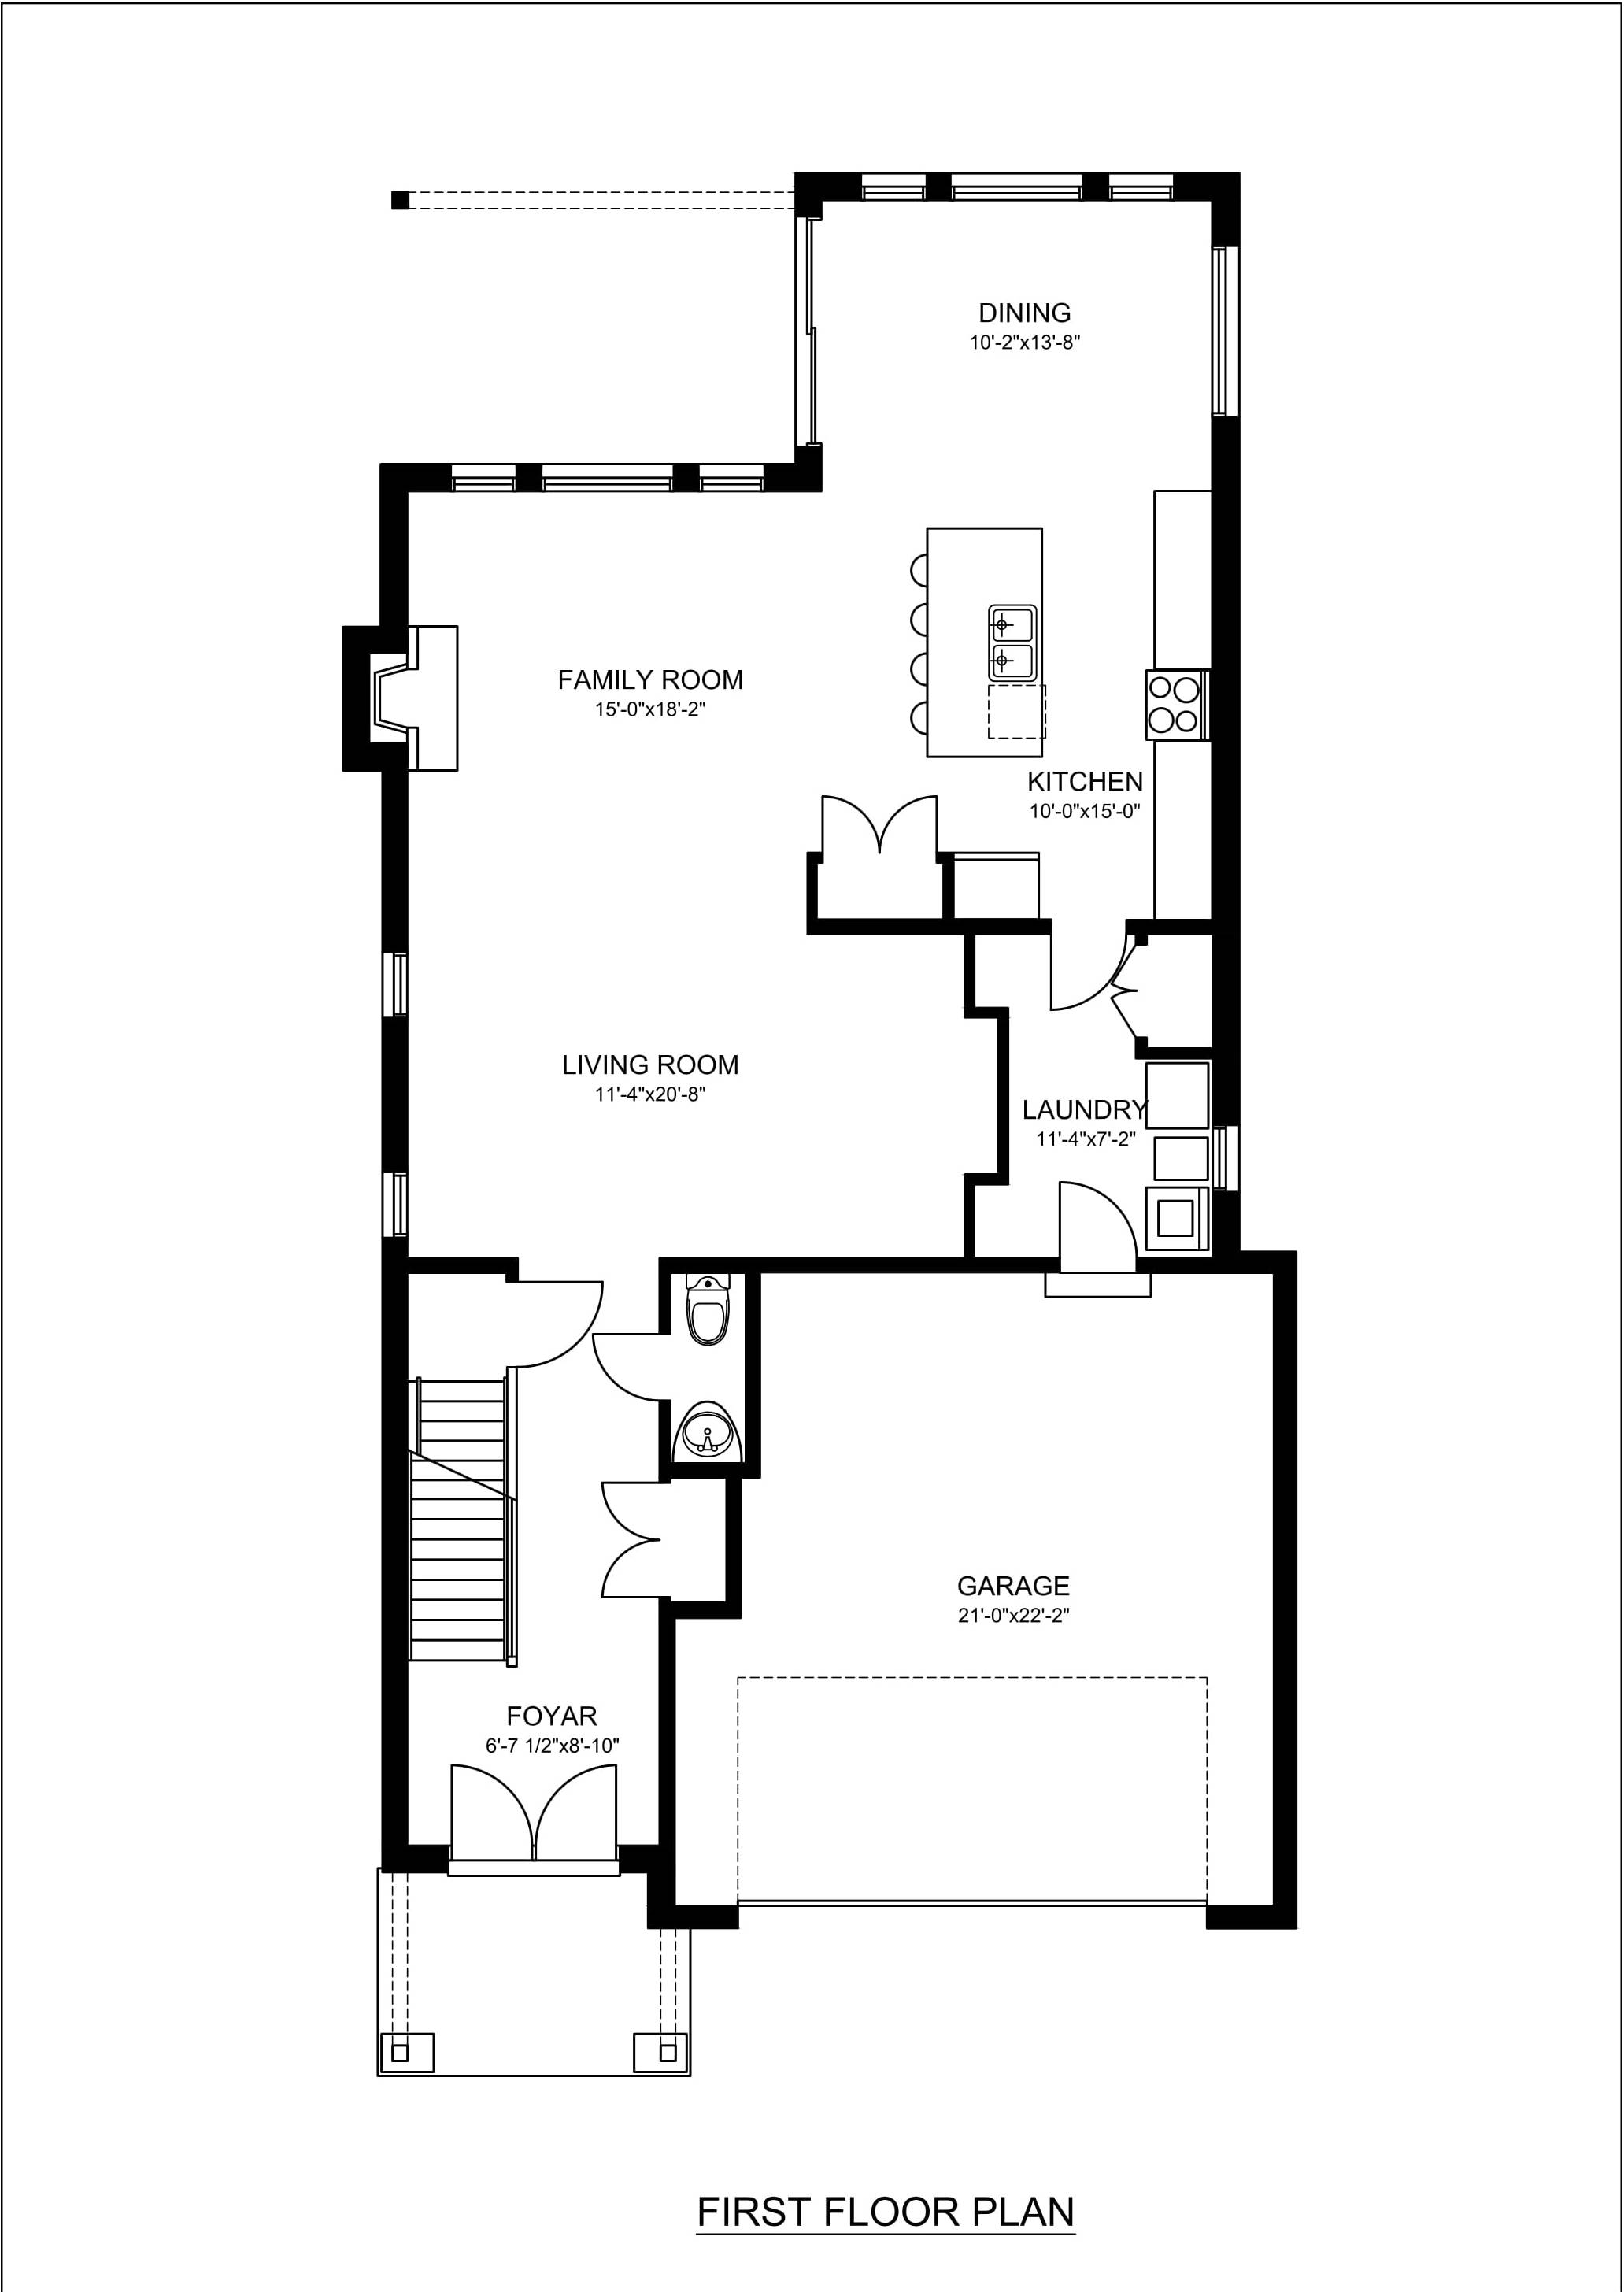 2d floor plan design rendering samples examples for Floor plan designer